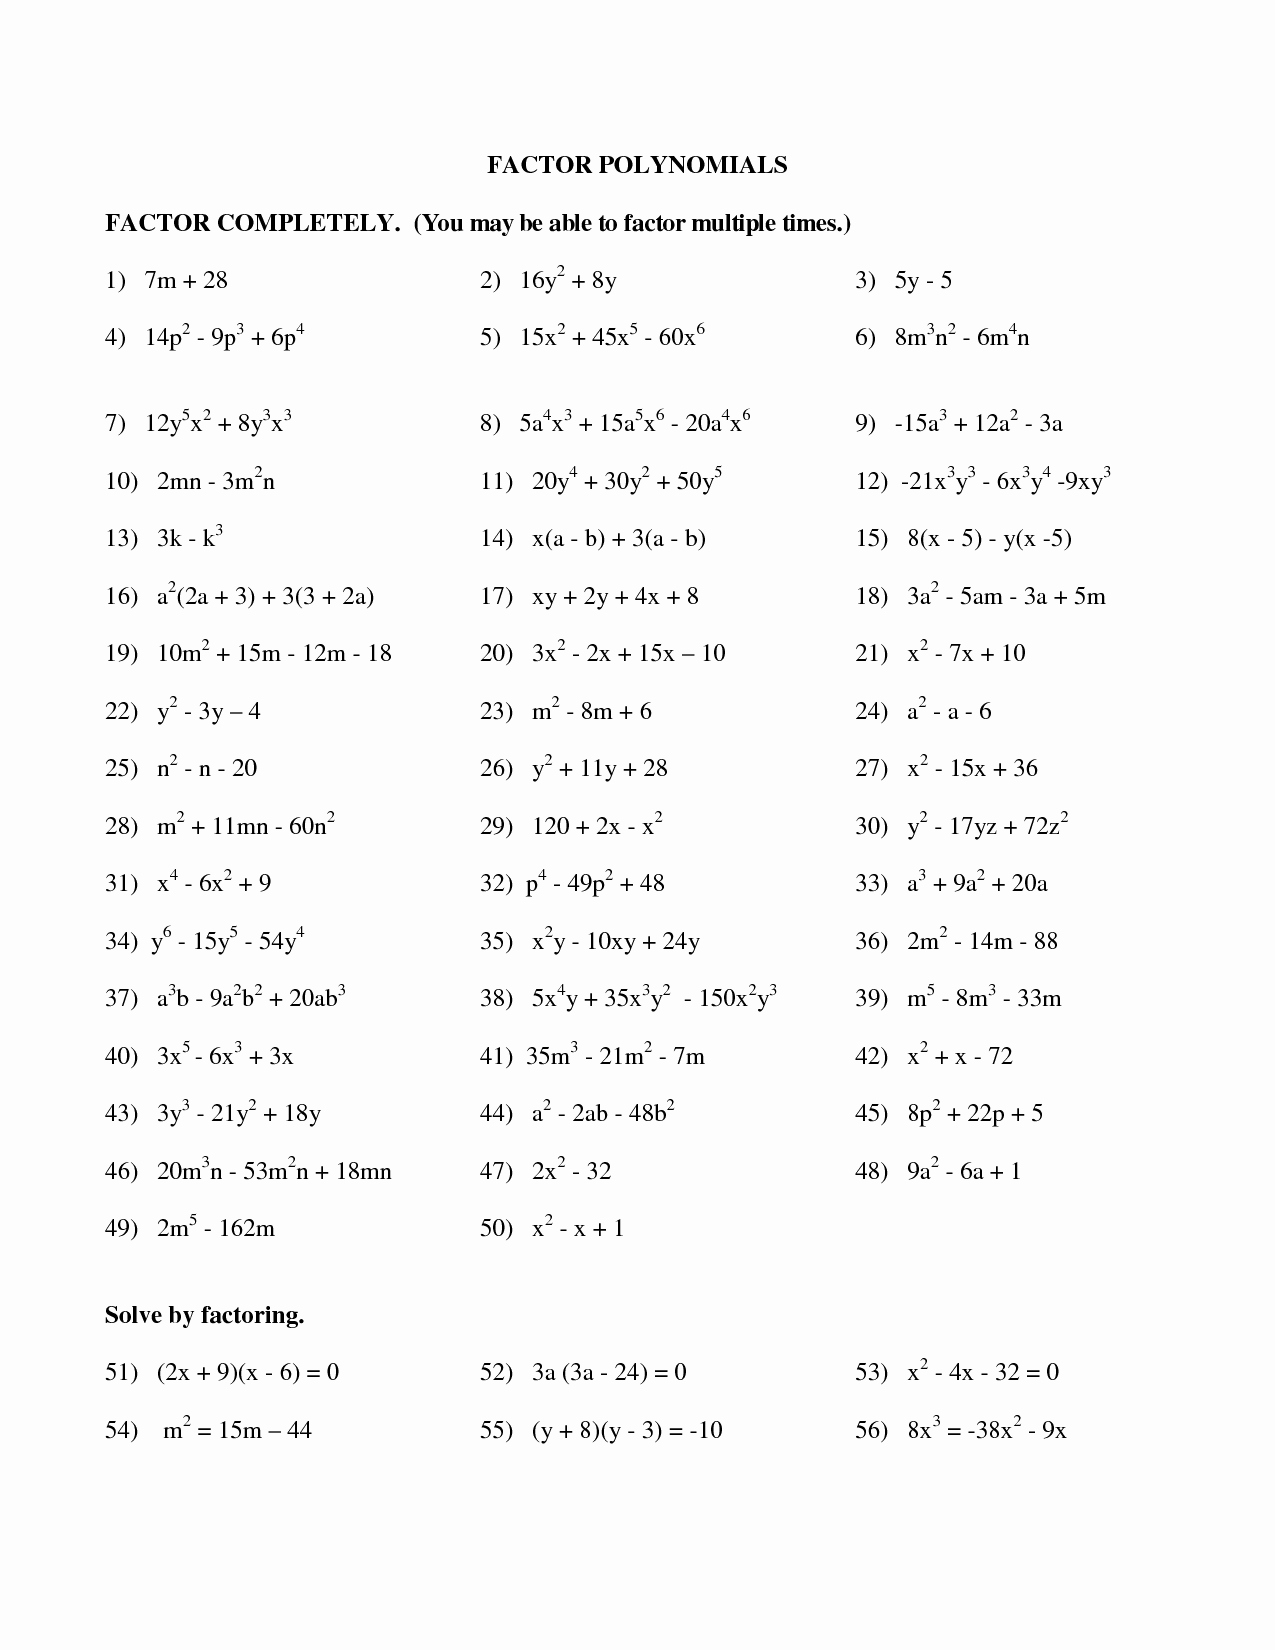 Factoring Polynomials Worksheet with Answers Luxury 10 Best Of Factoring Polynomials Practice Worksheet